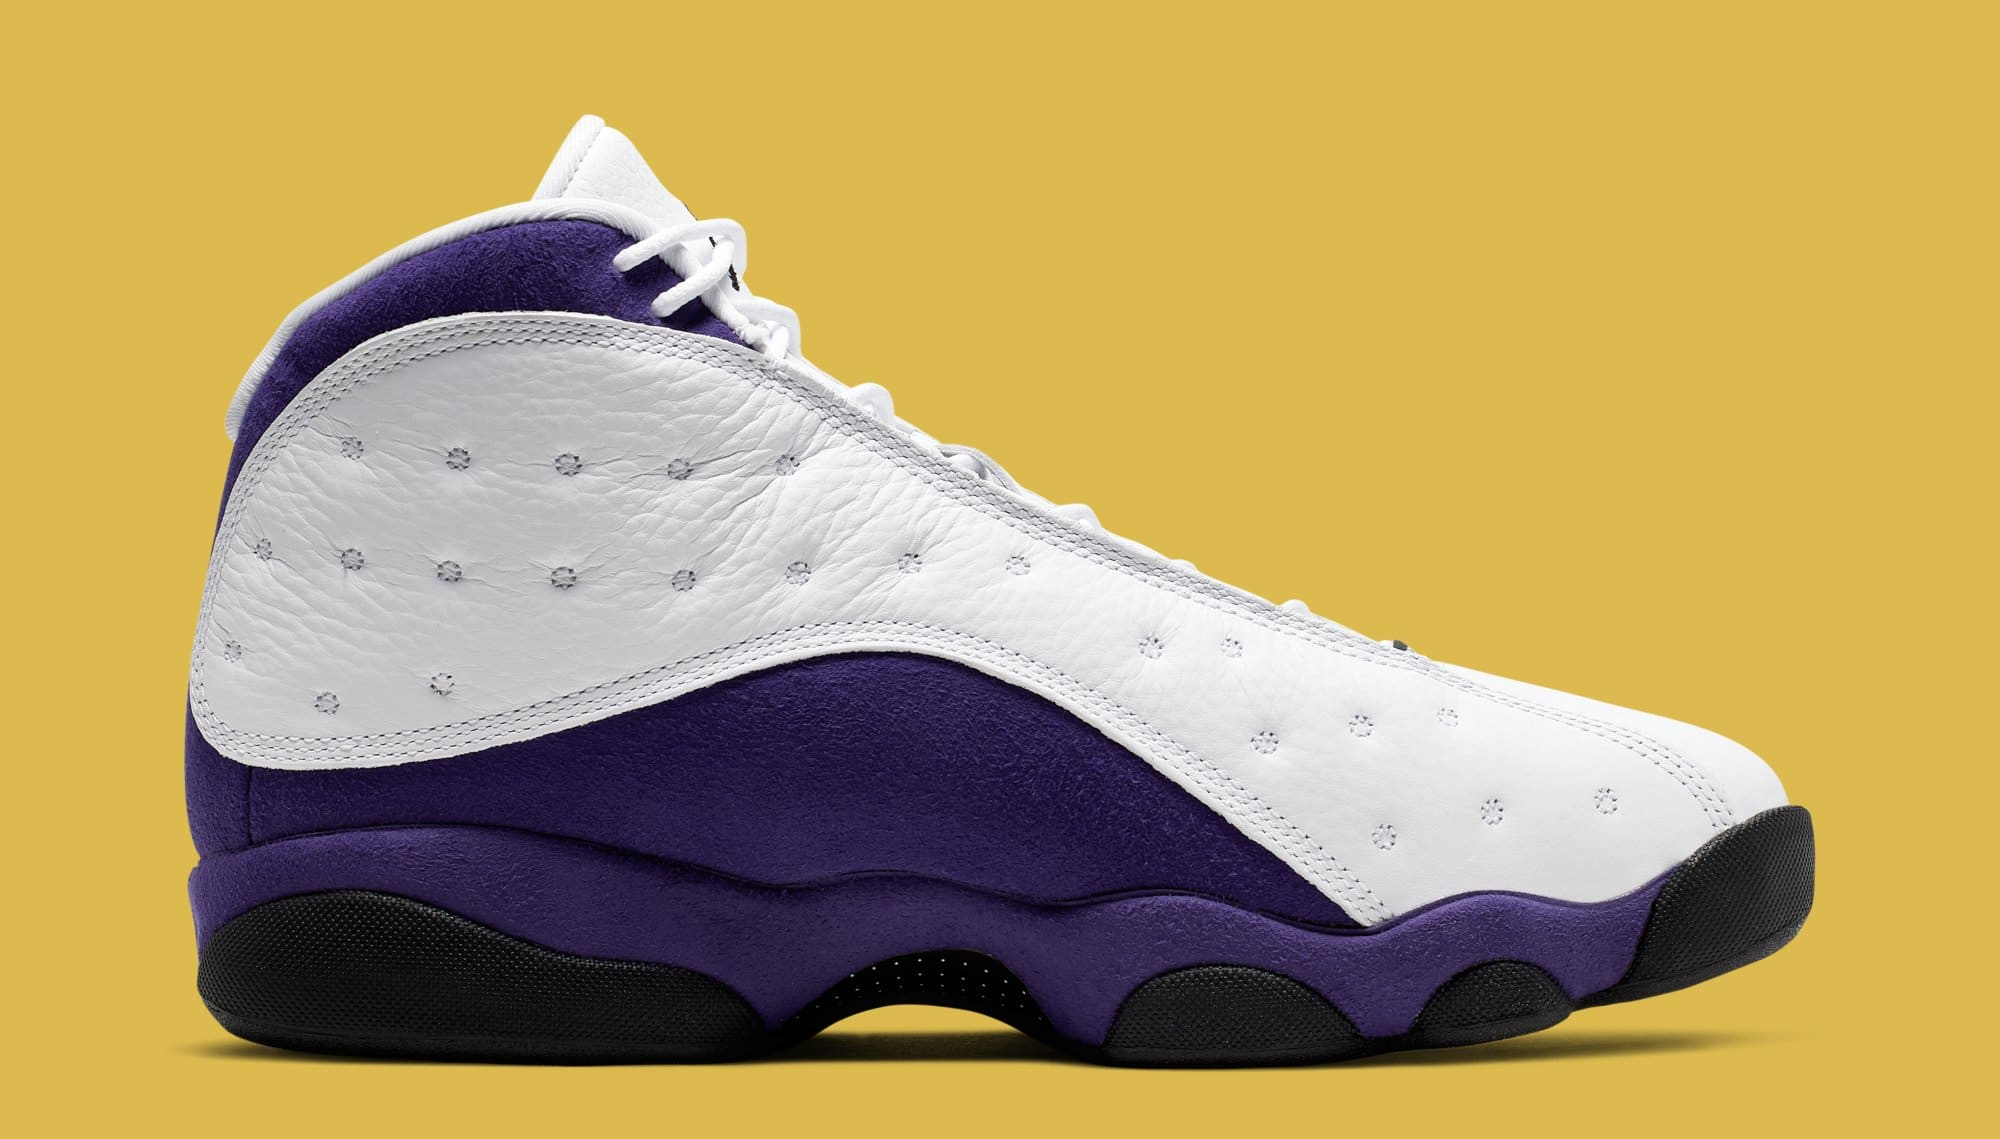 super popular a4be9 61fed Air Jordan 13 'Lakers' White/Black-Court Purple-University ...